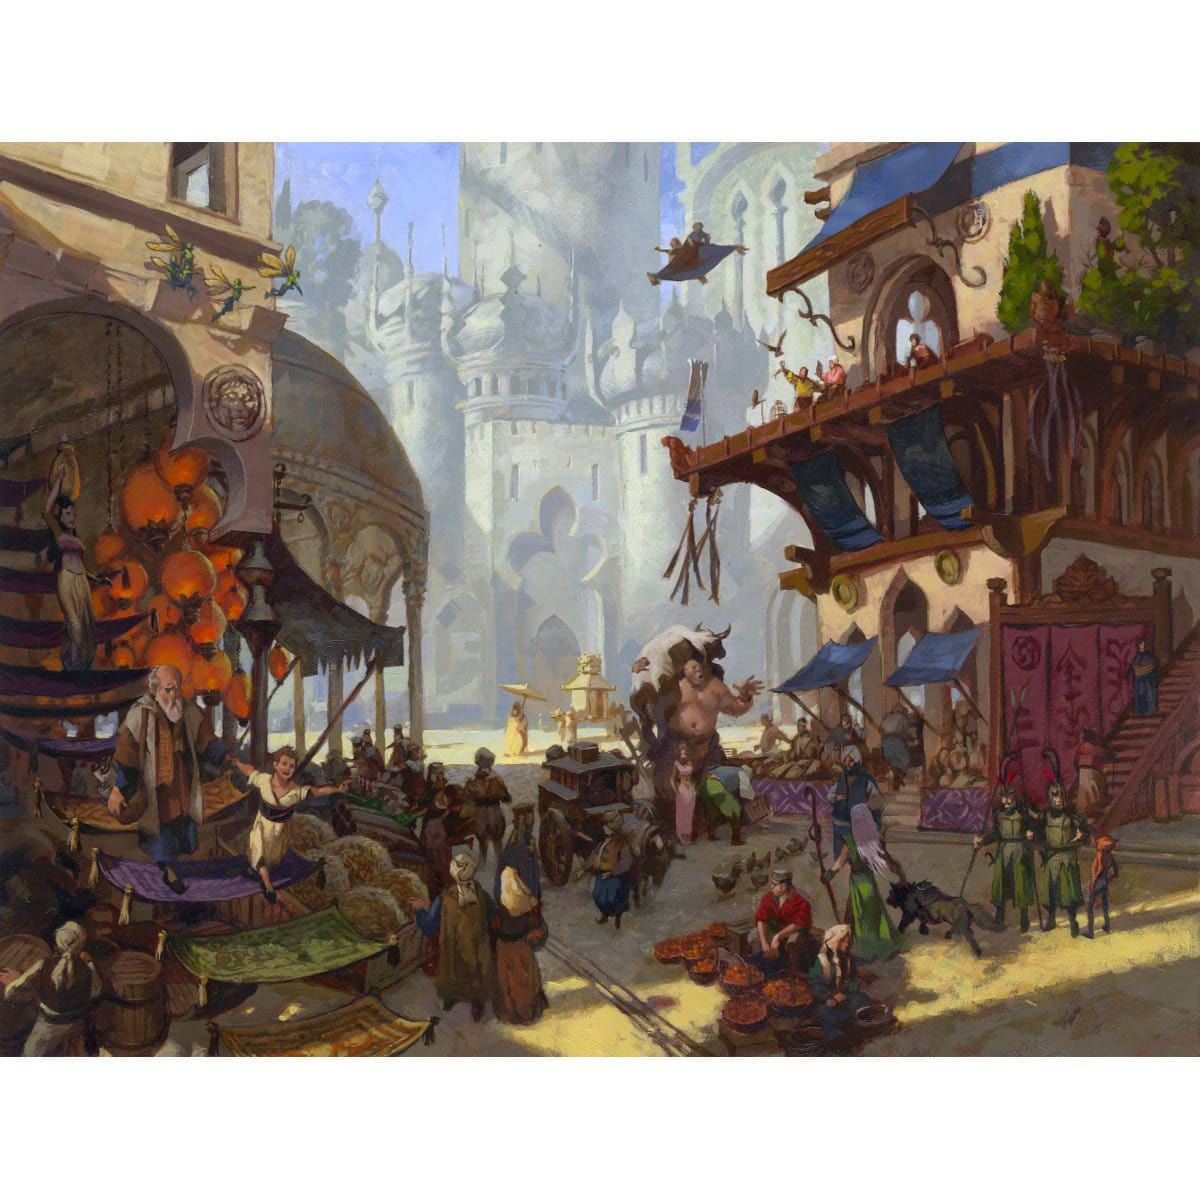 Bazaar of Baghdad Print - Print - Original Magic Art - Accessories for Magic the Gathering and other card games